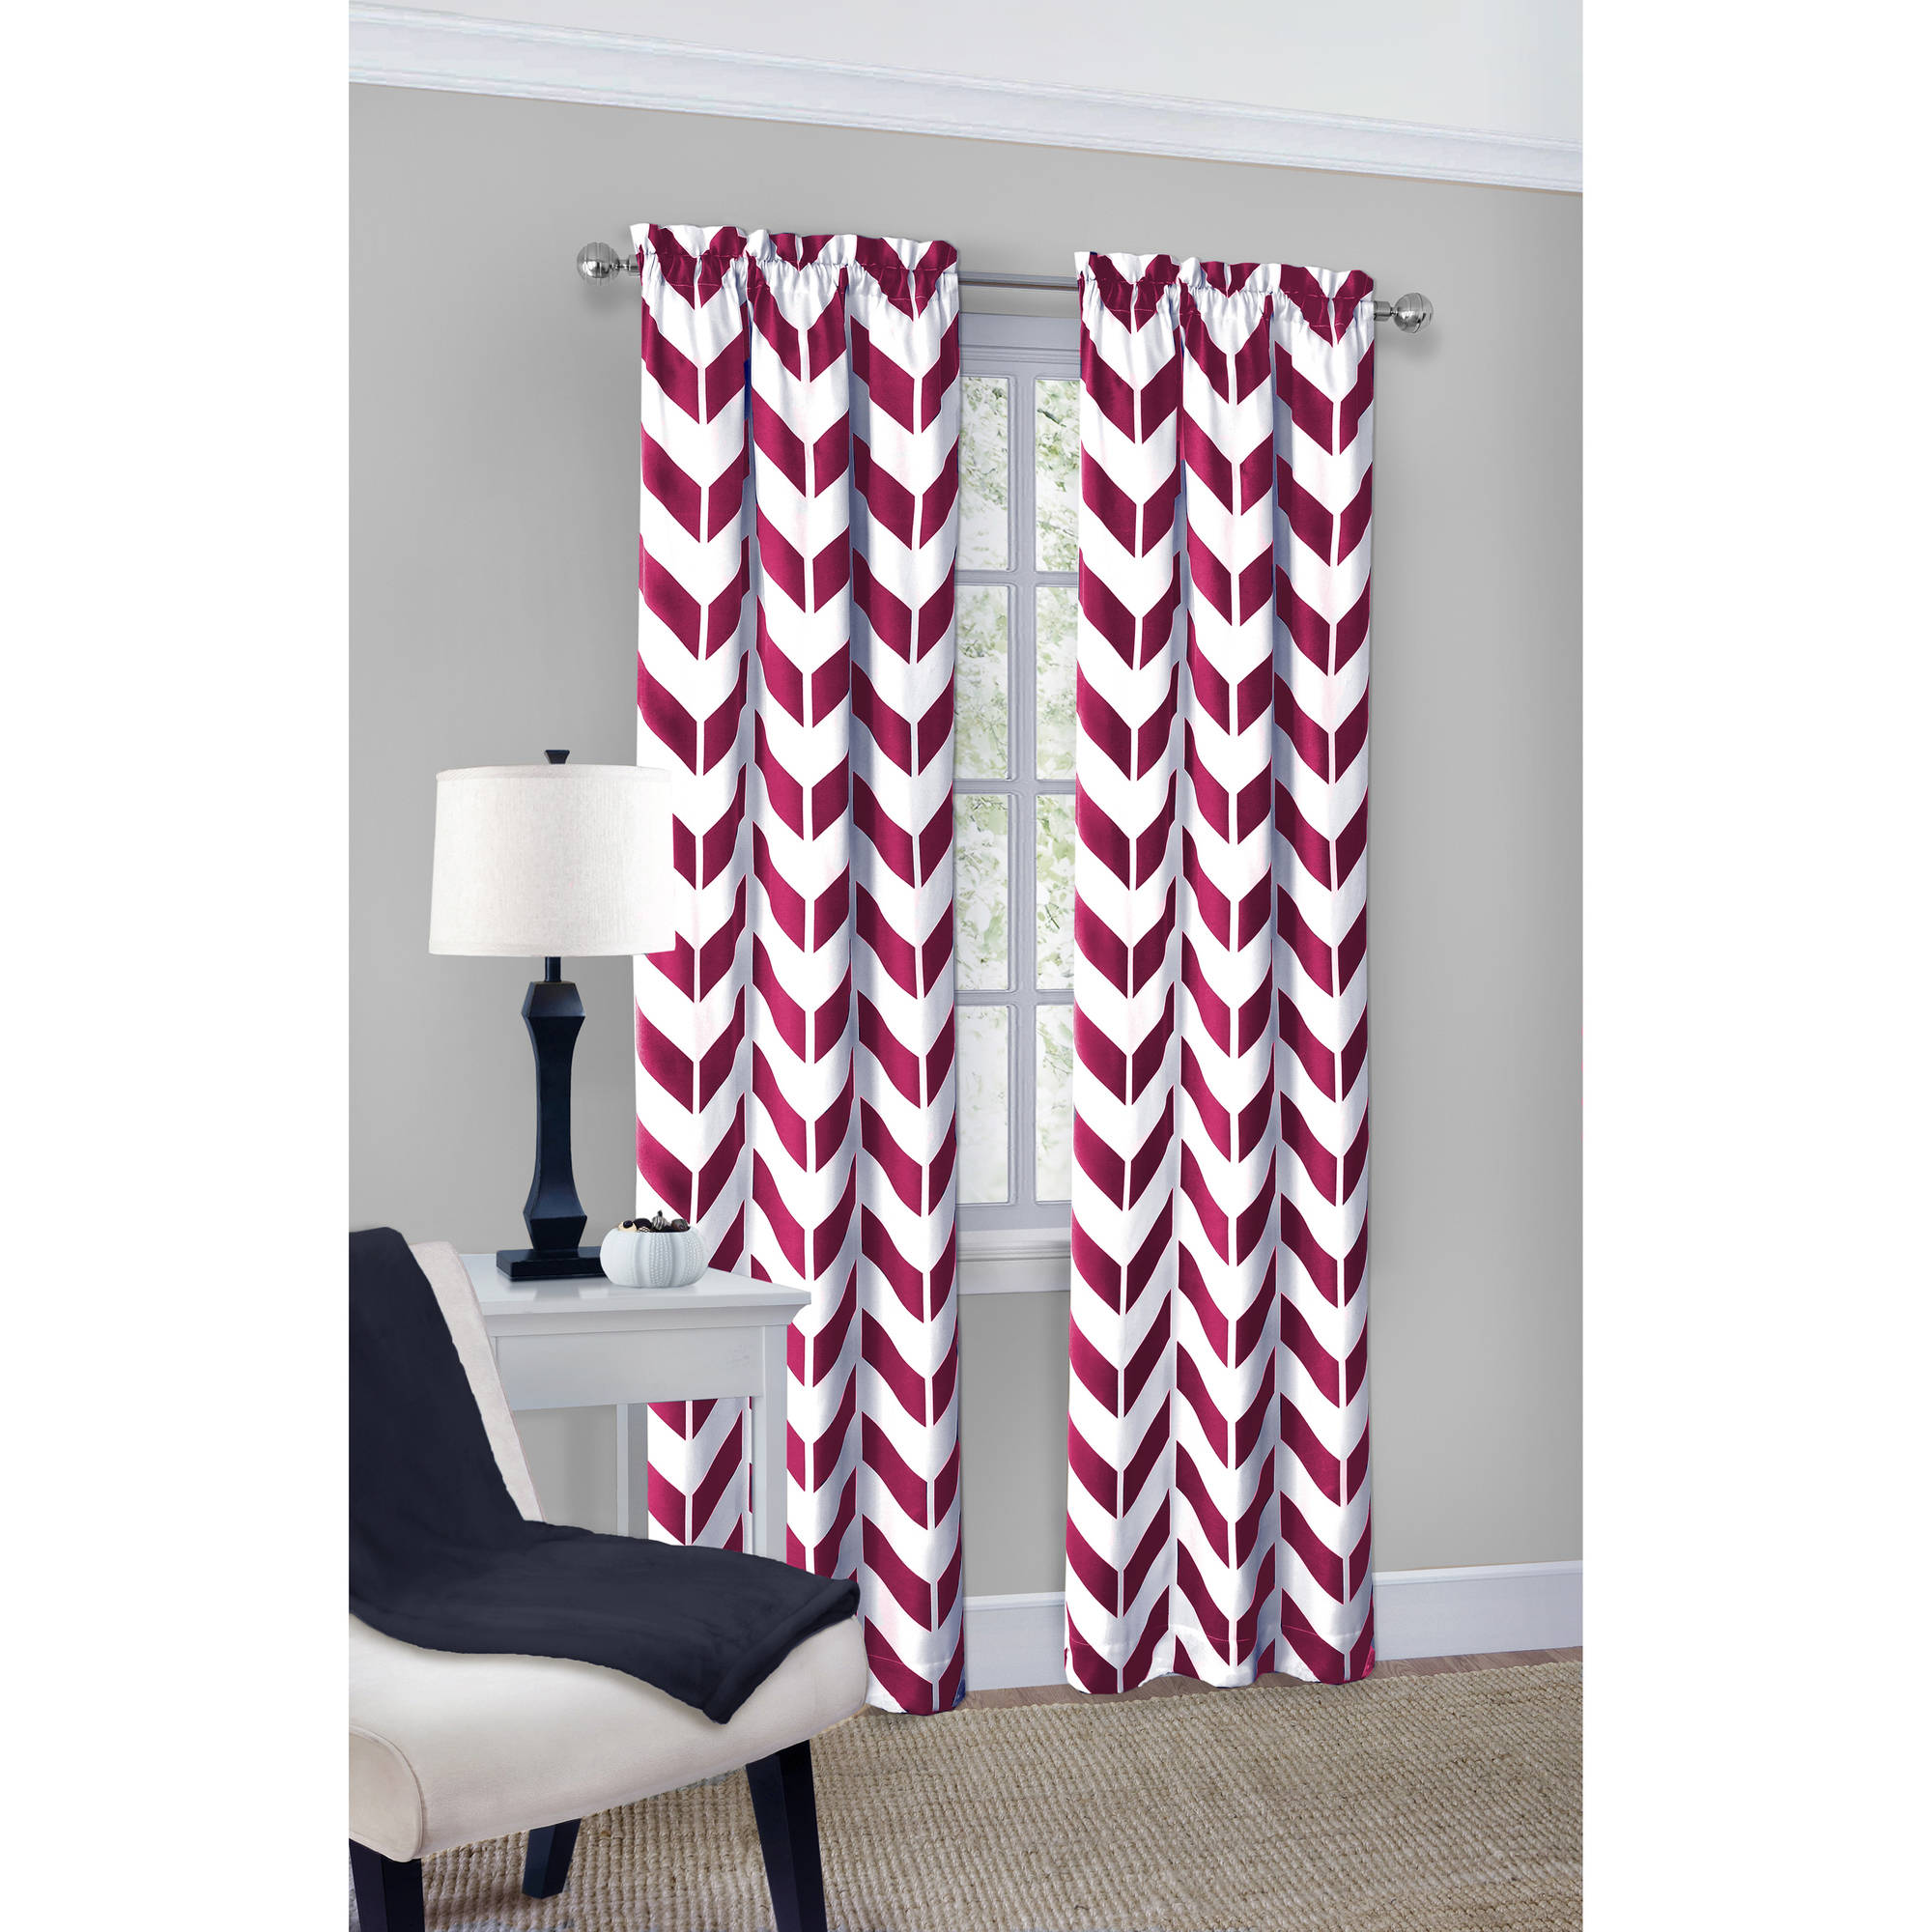 Living Room Curtains At Walmart Mainstays Chevron Curtain With Bonus Panel Set Of 2 Walmartcom